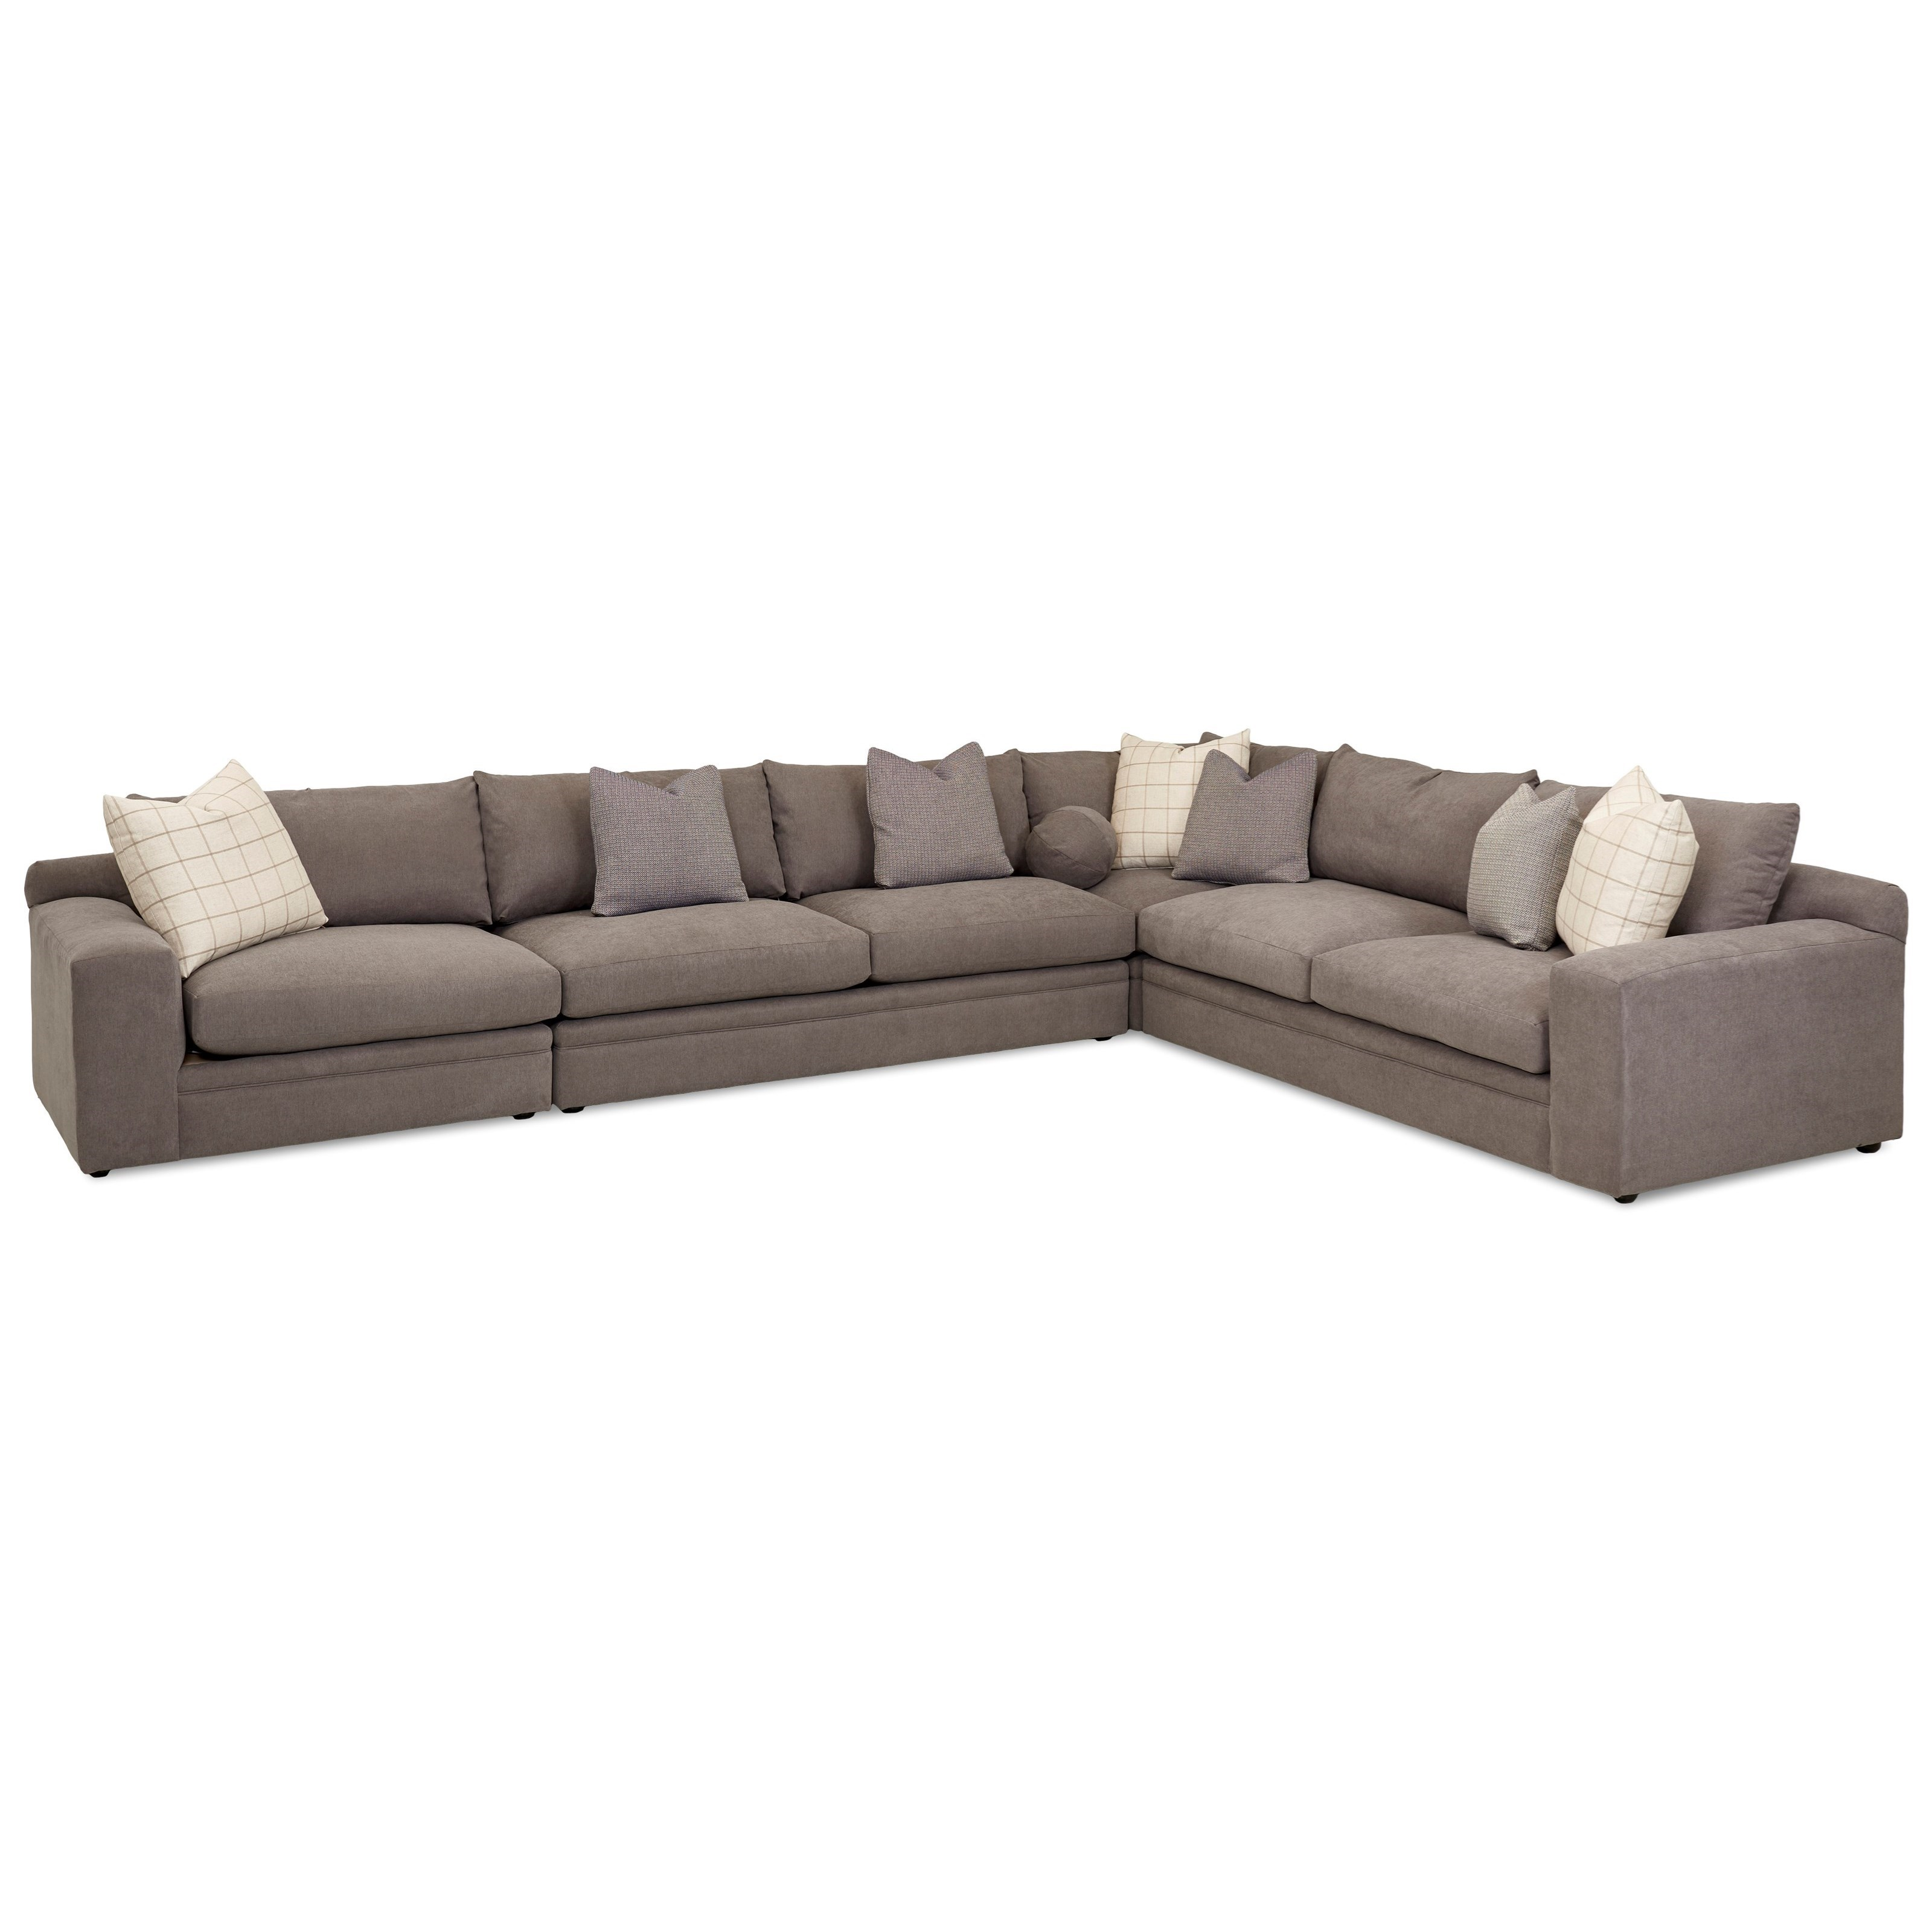 Casa Mesa 4 Pc Sectional Sofa w/ LAF Chair by Klaussner at Northeast Factory Direct